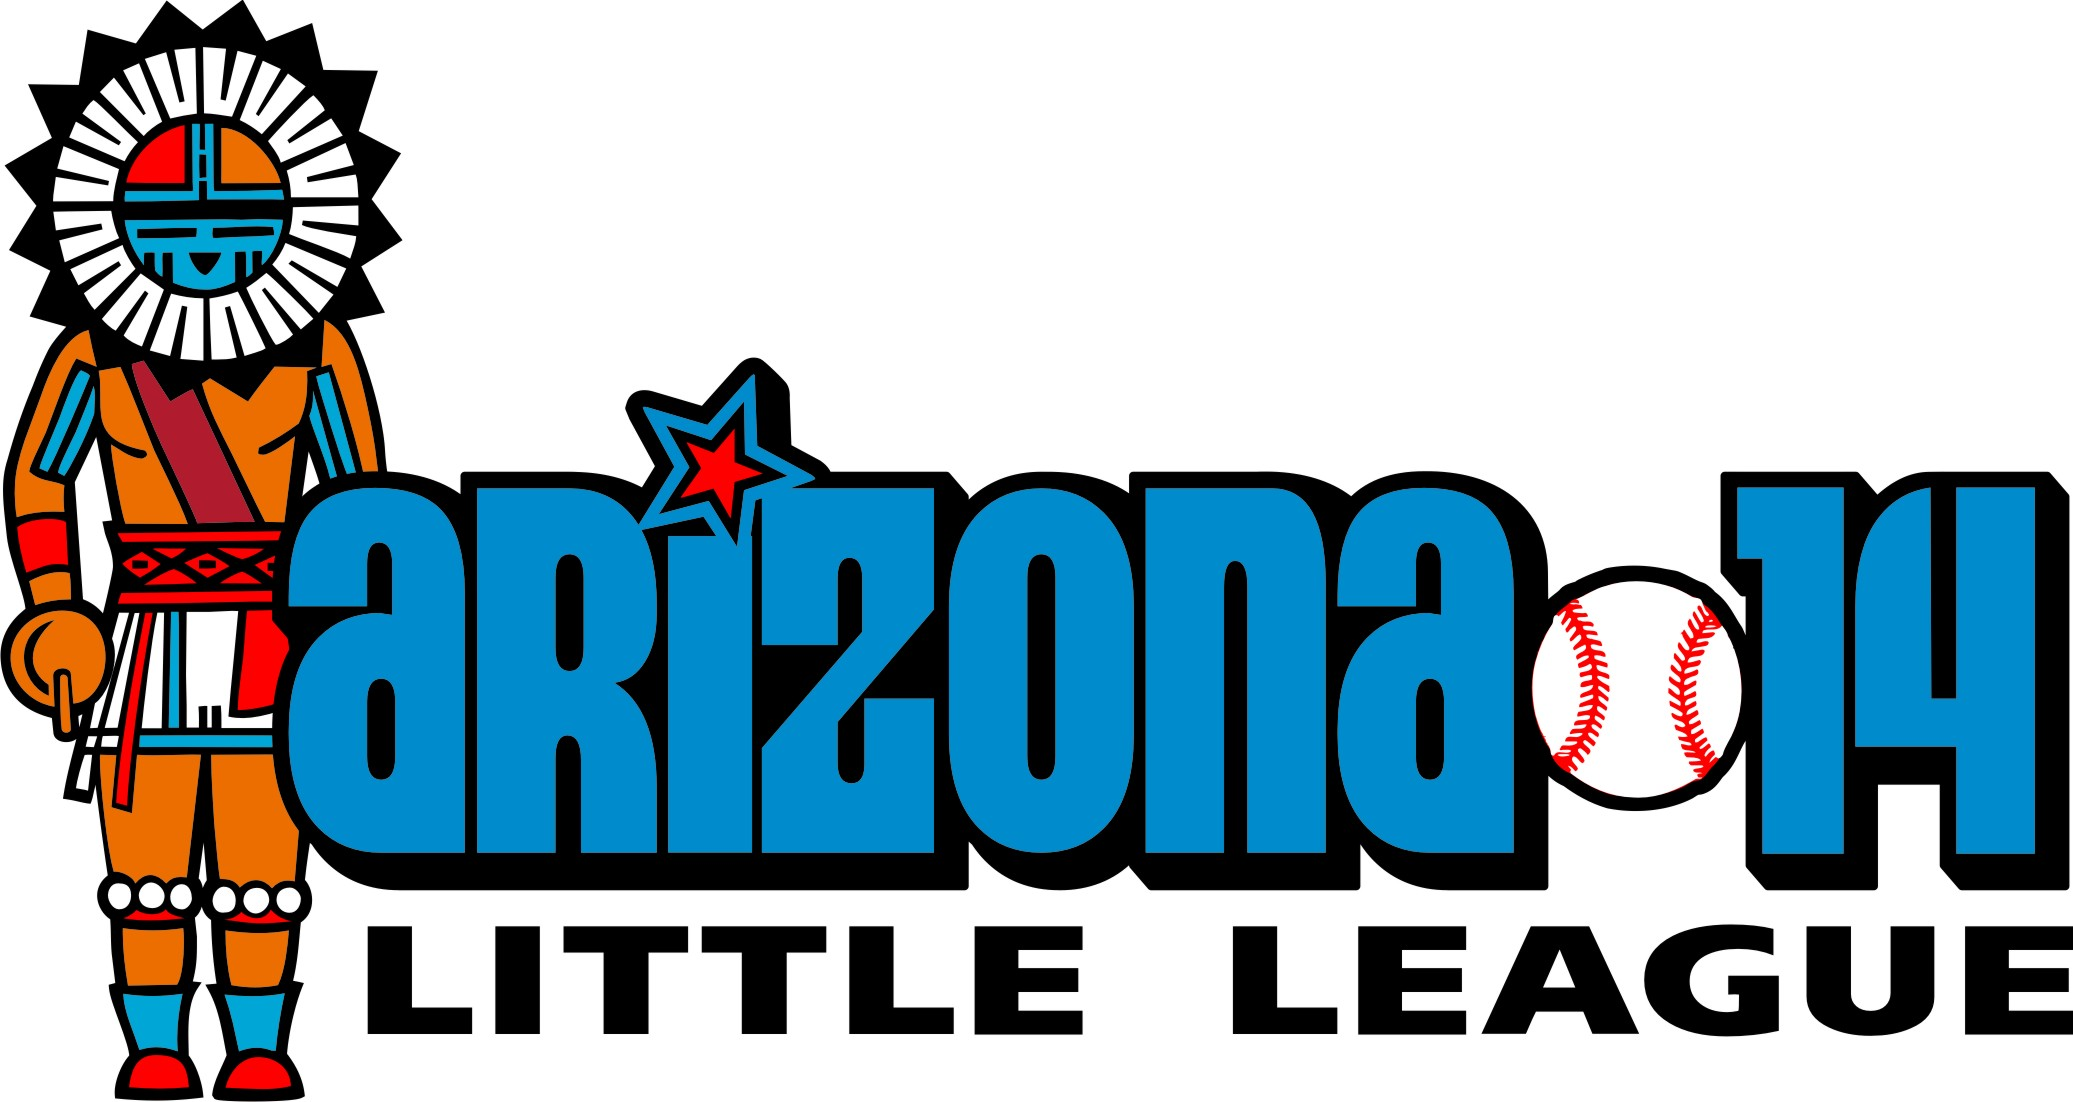 Arizona District 14 Little League